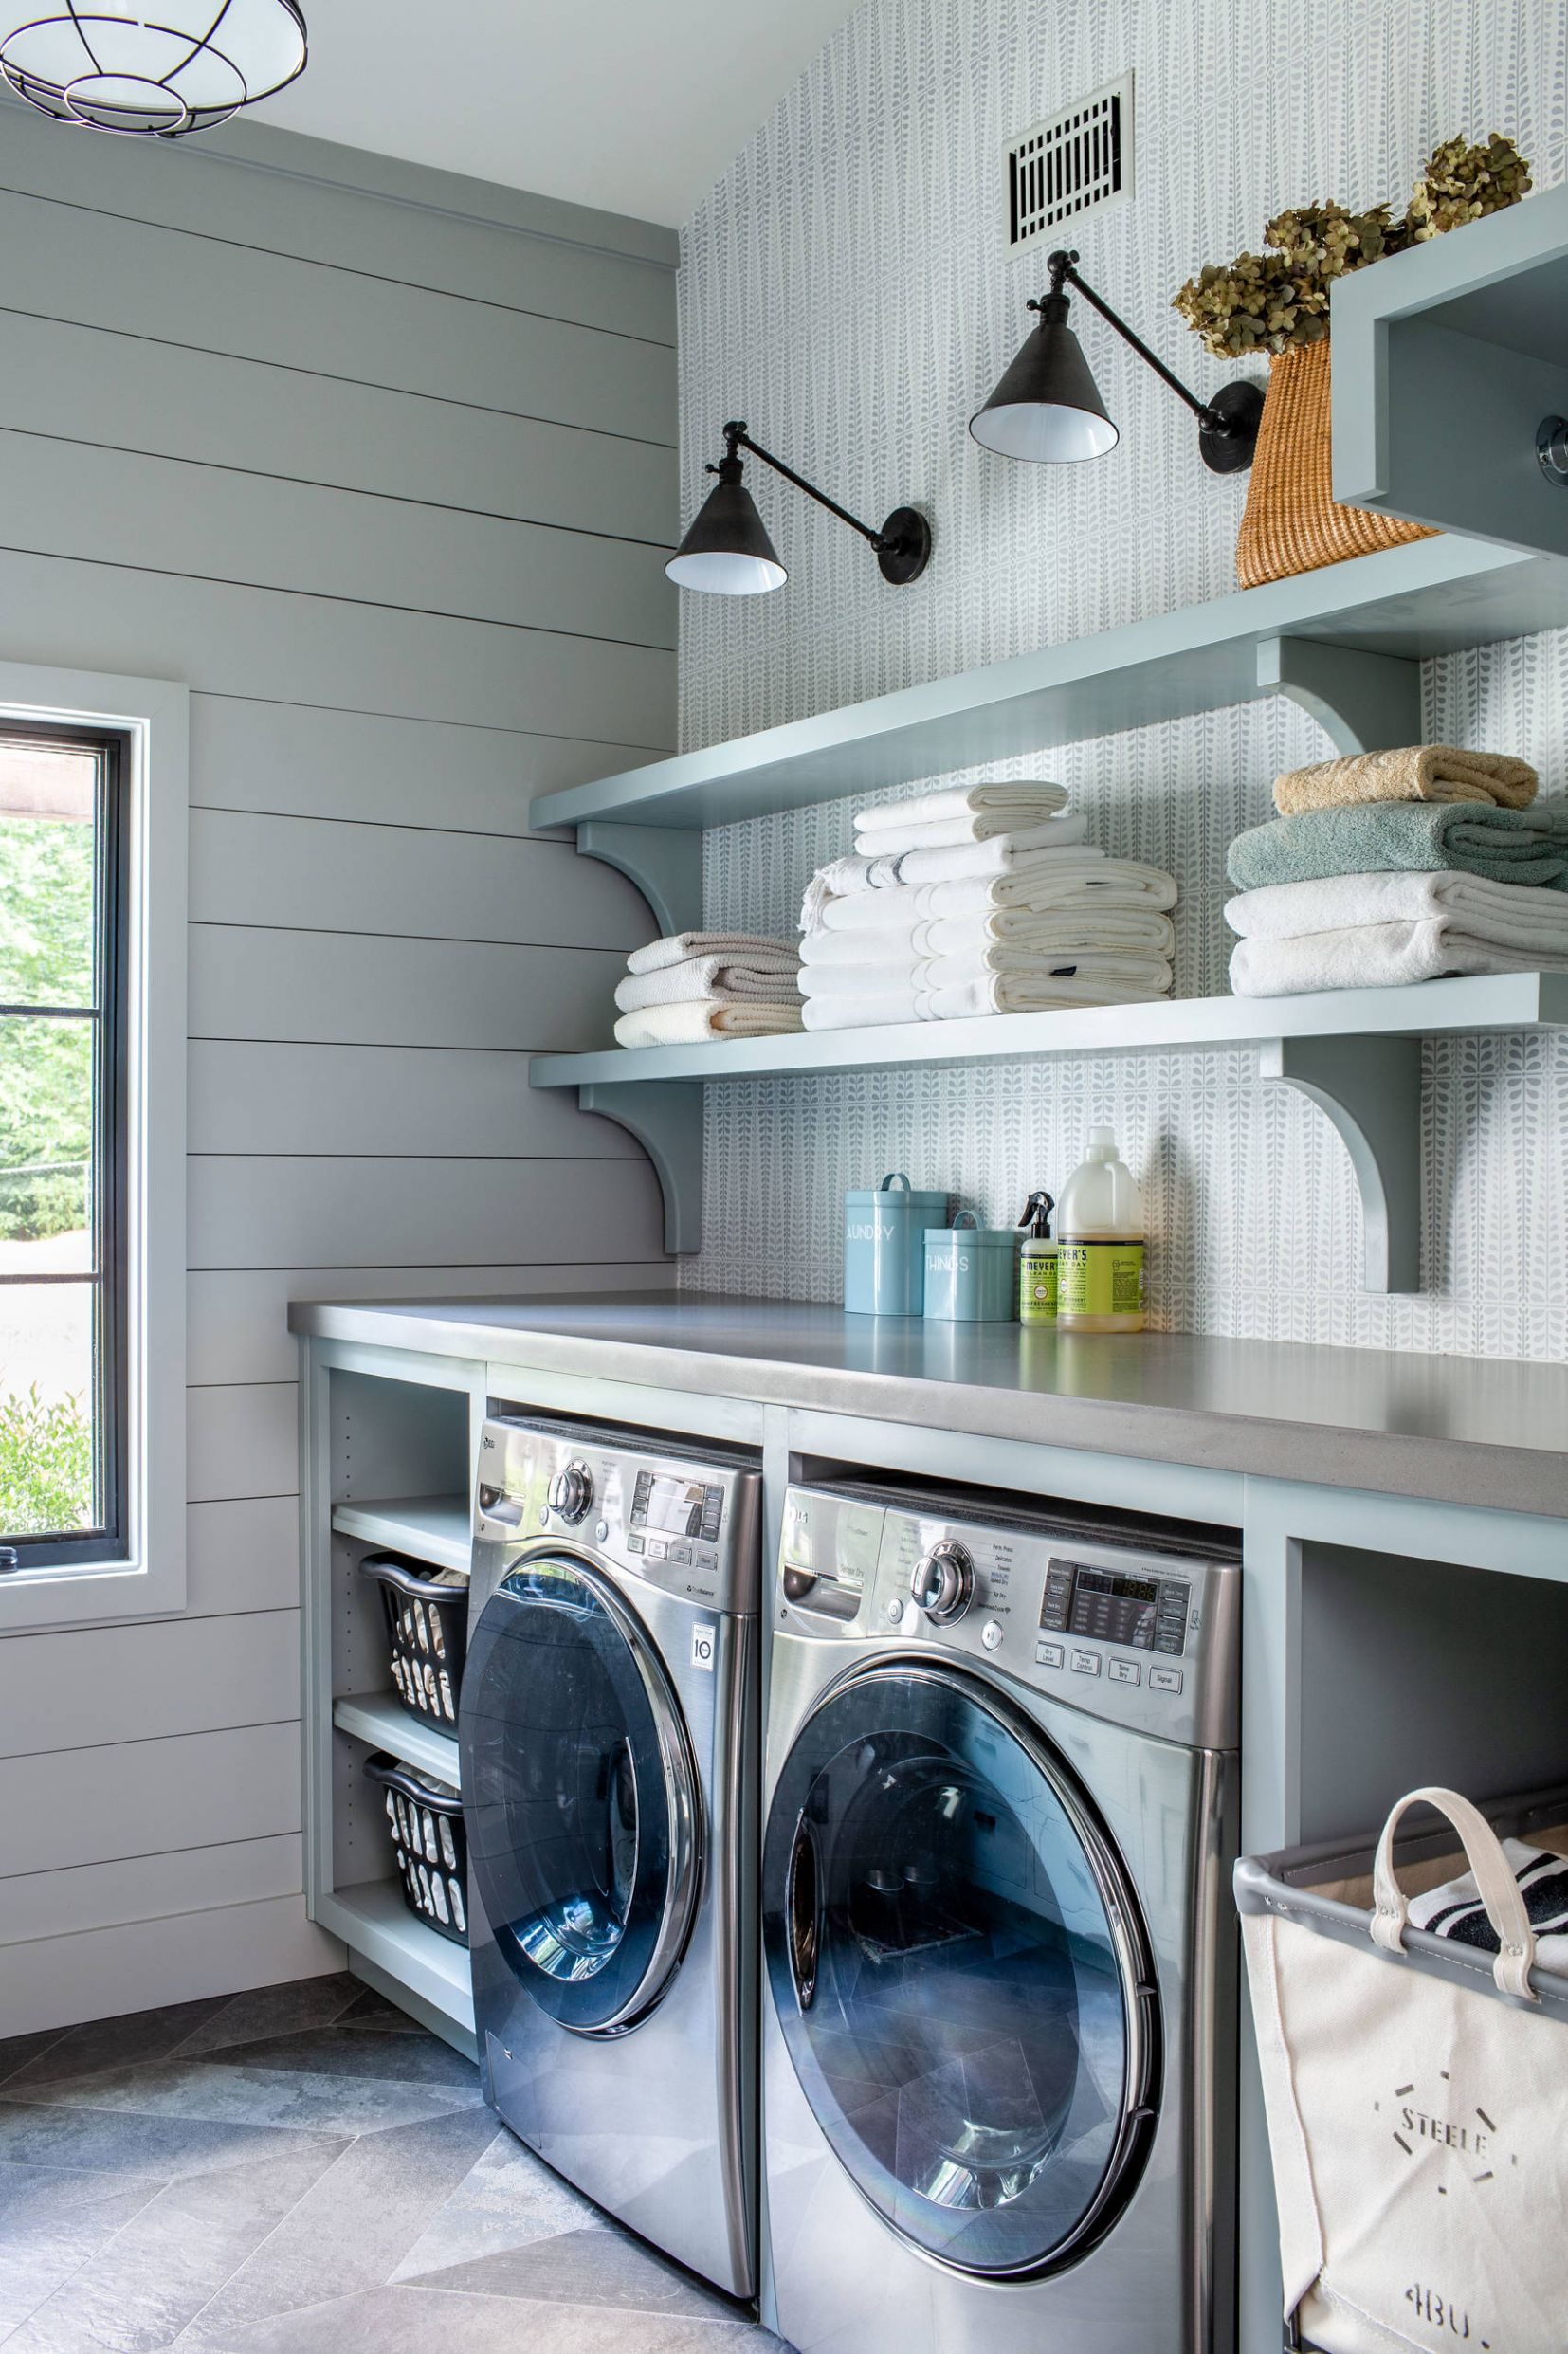 11 Beautiful Laundry Room Pictures & Ideas | Houzz